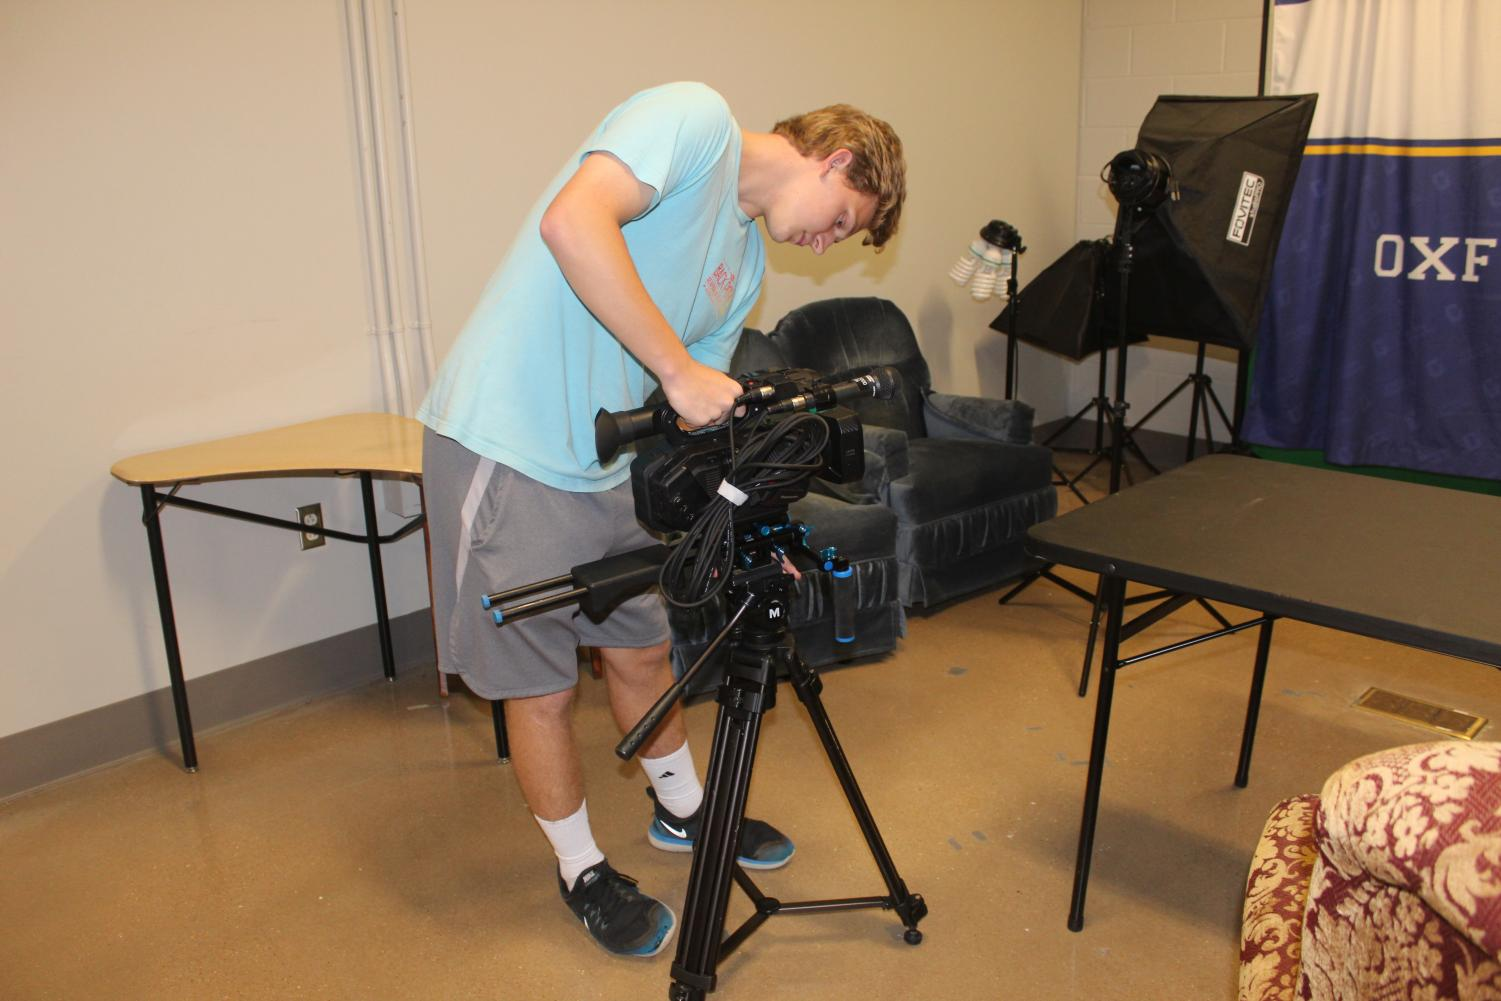 Senior Dalton Whitehead sets up a camera and gets ready to film a segment for